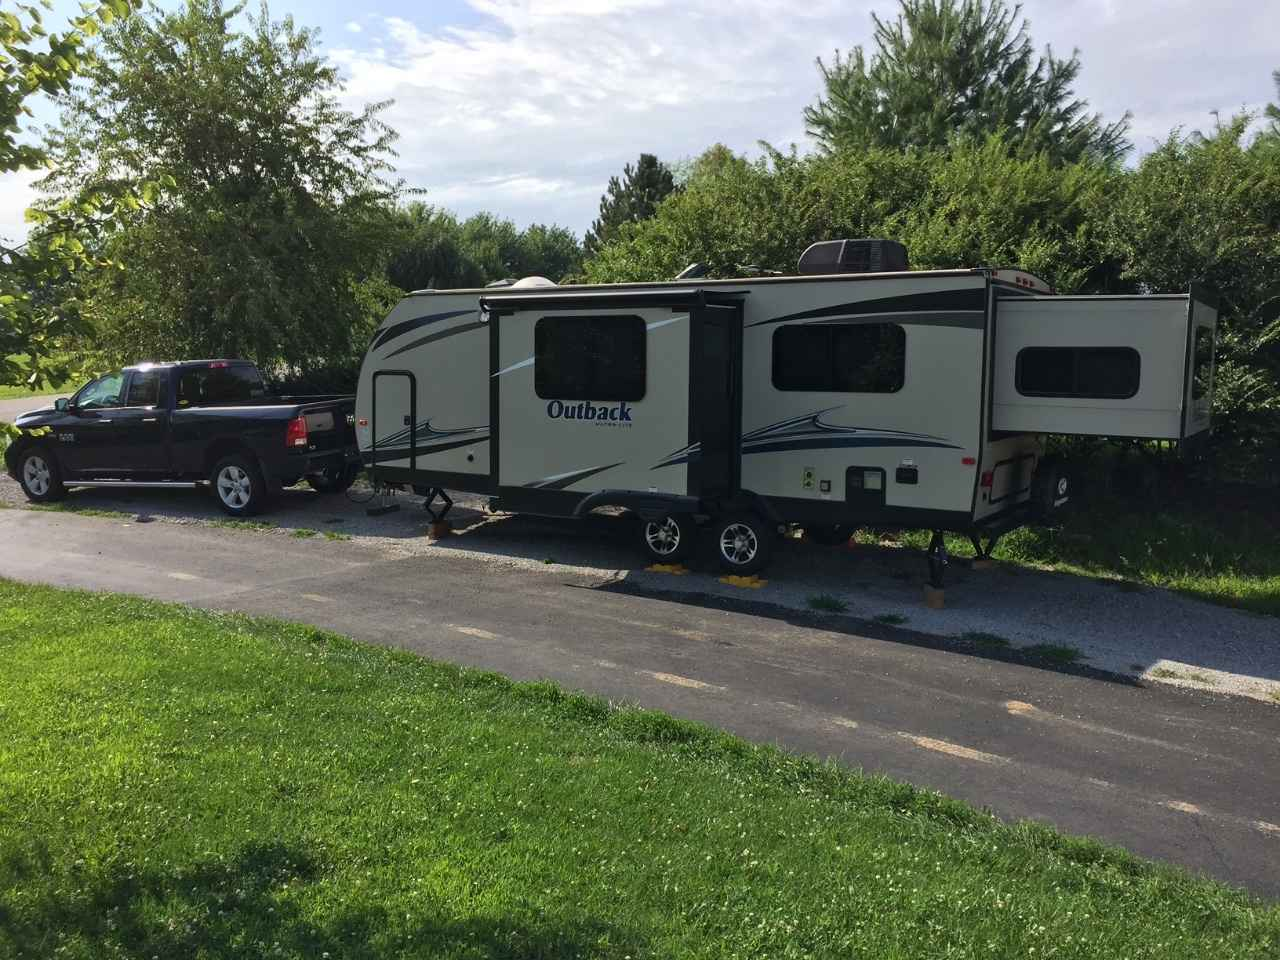 Outback Travel Trailer Urs